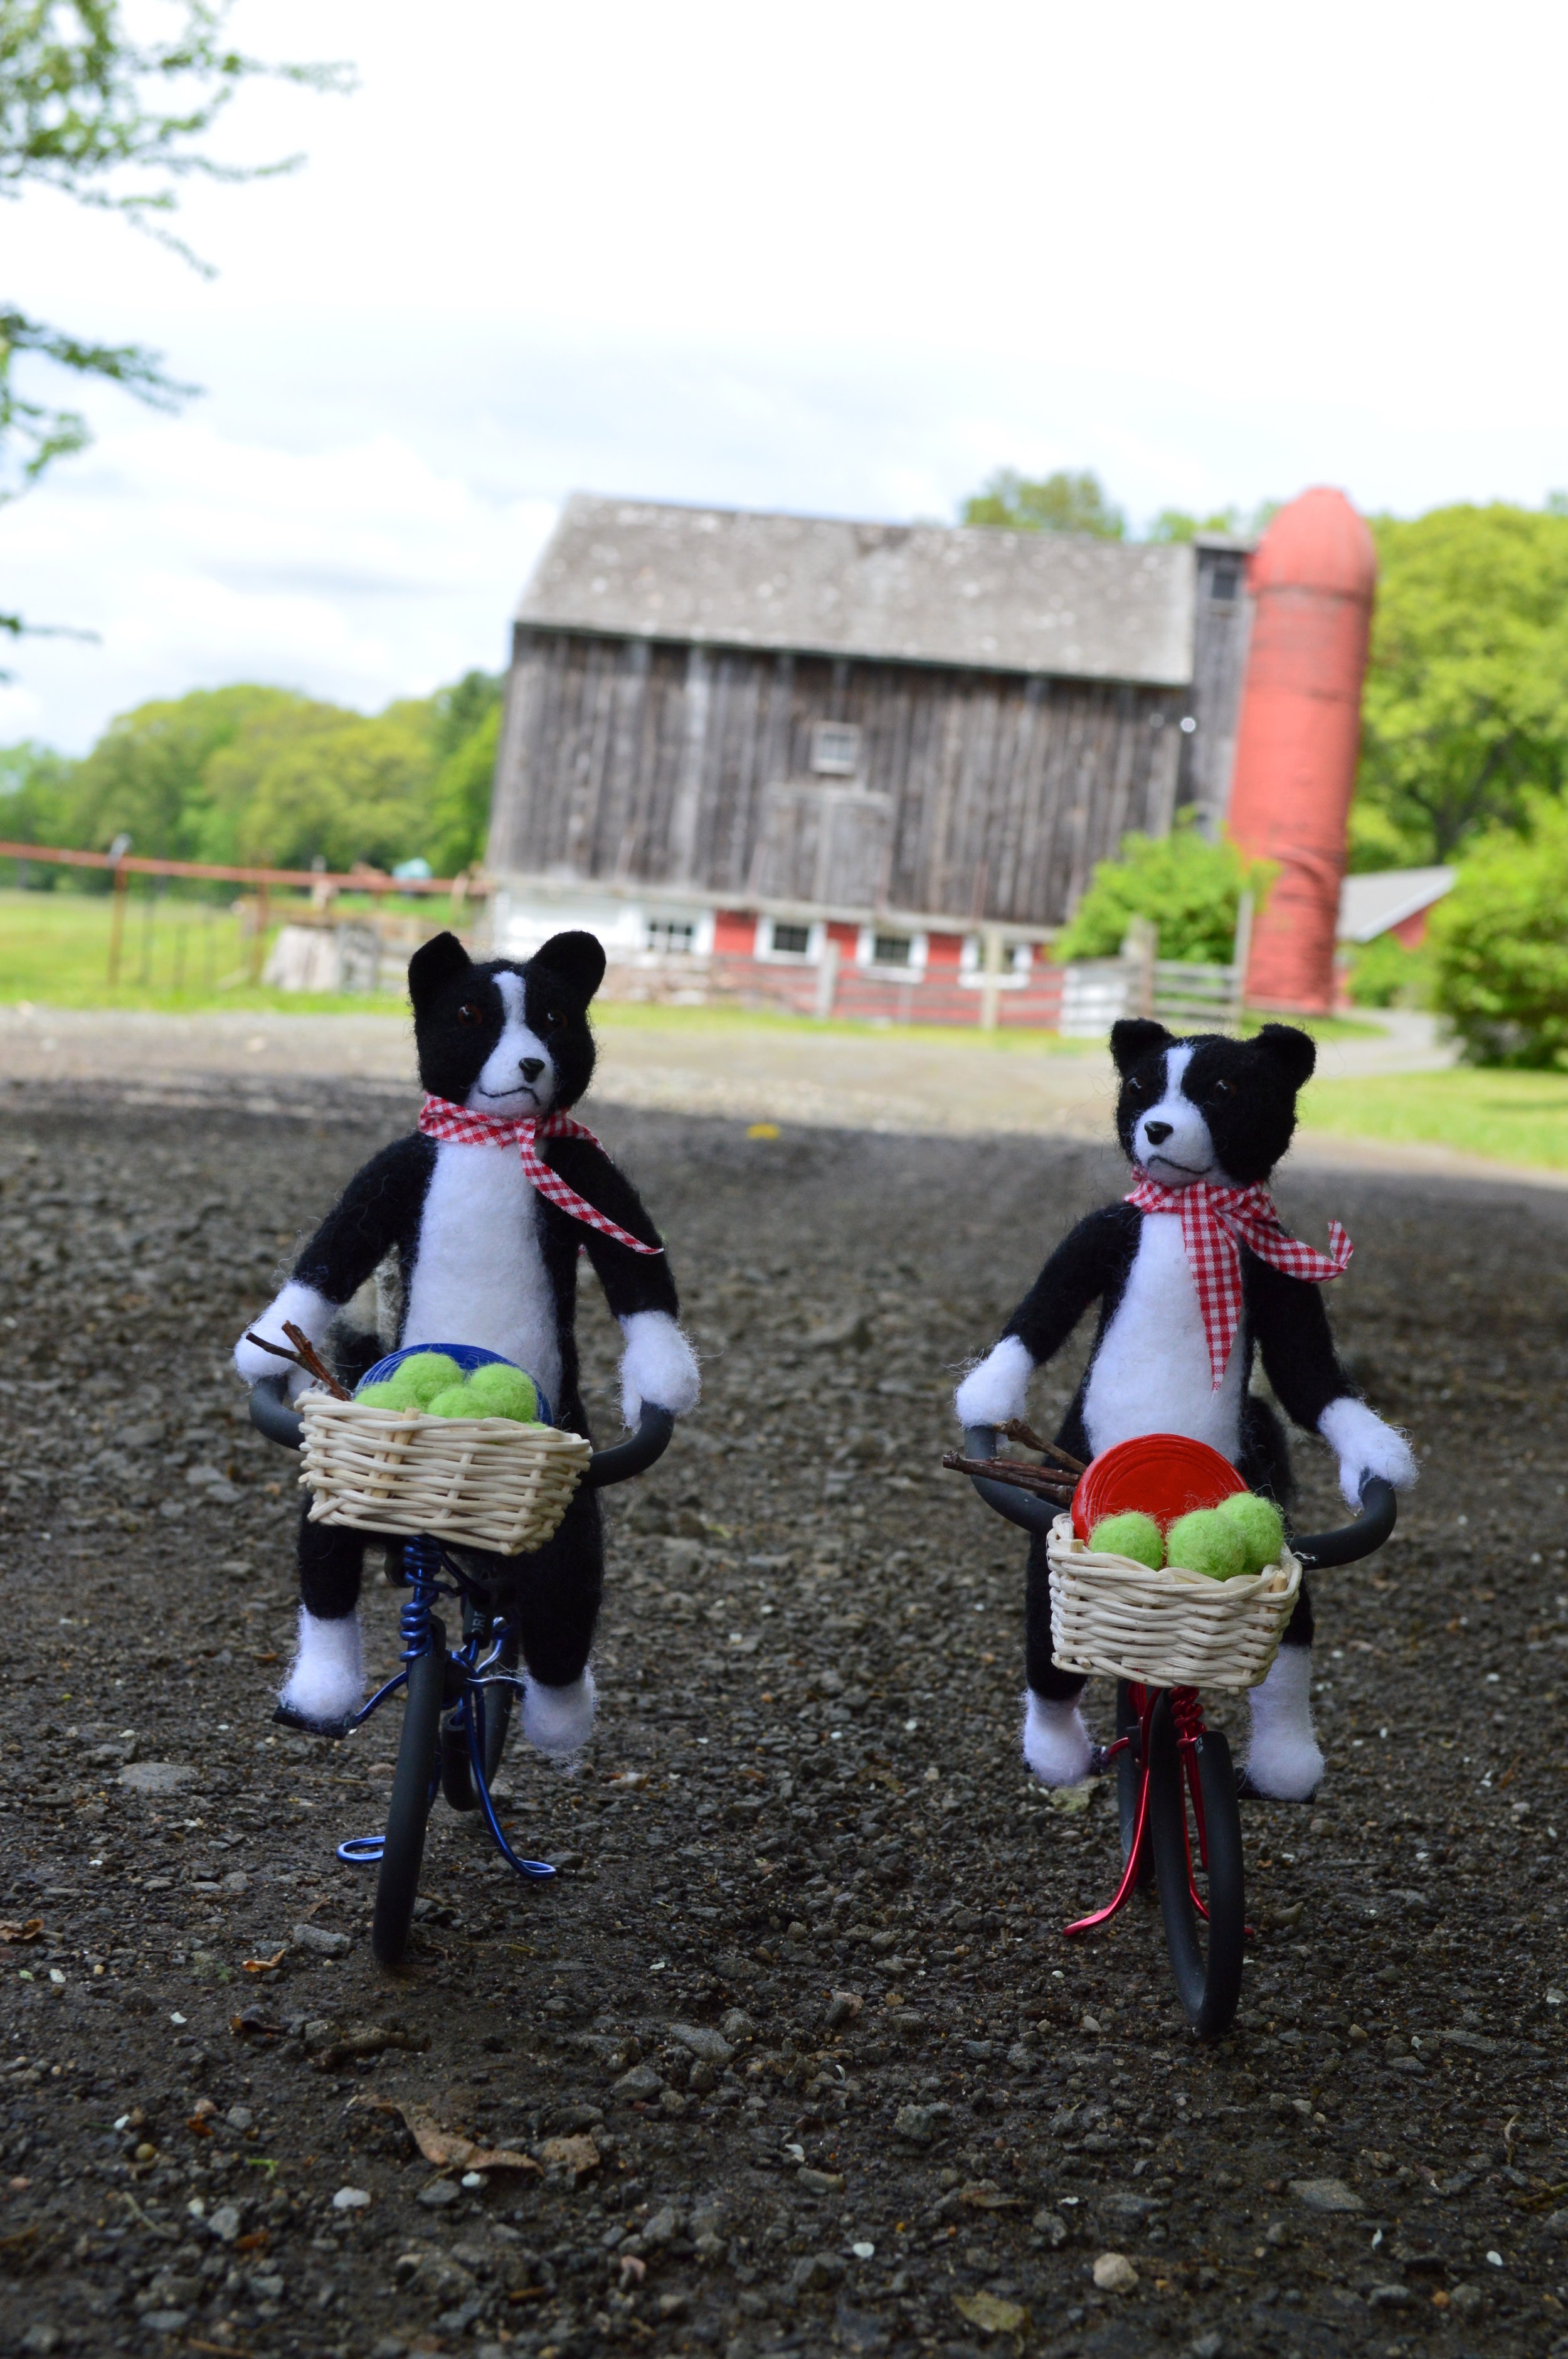 Border Collies on Vacation